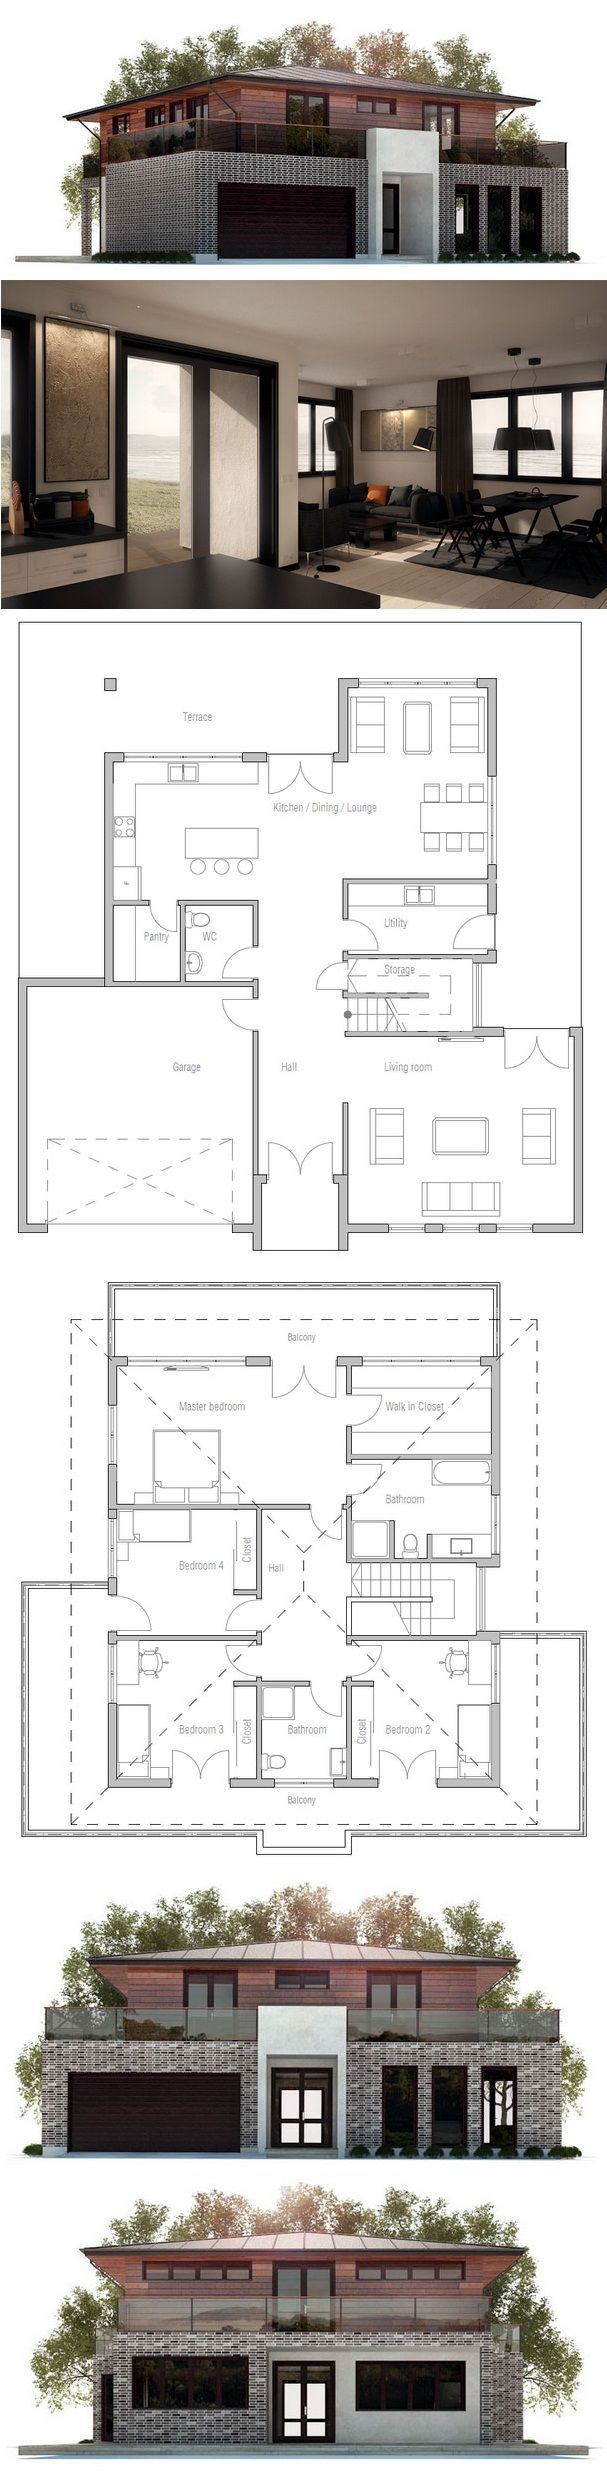 Dream house set up....If only Who Else Wants Simple Step-By-Step Plans To Design And Build A Container Home From Scratch?  http://build-acontainerhome.blogspot.com?prod=wnSSWdLX